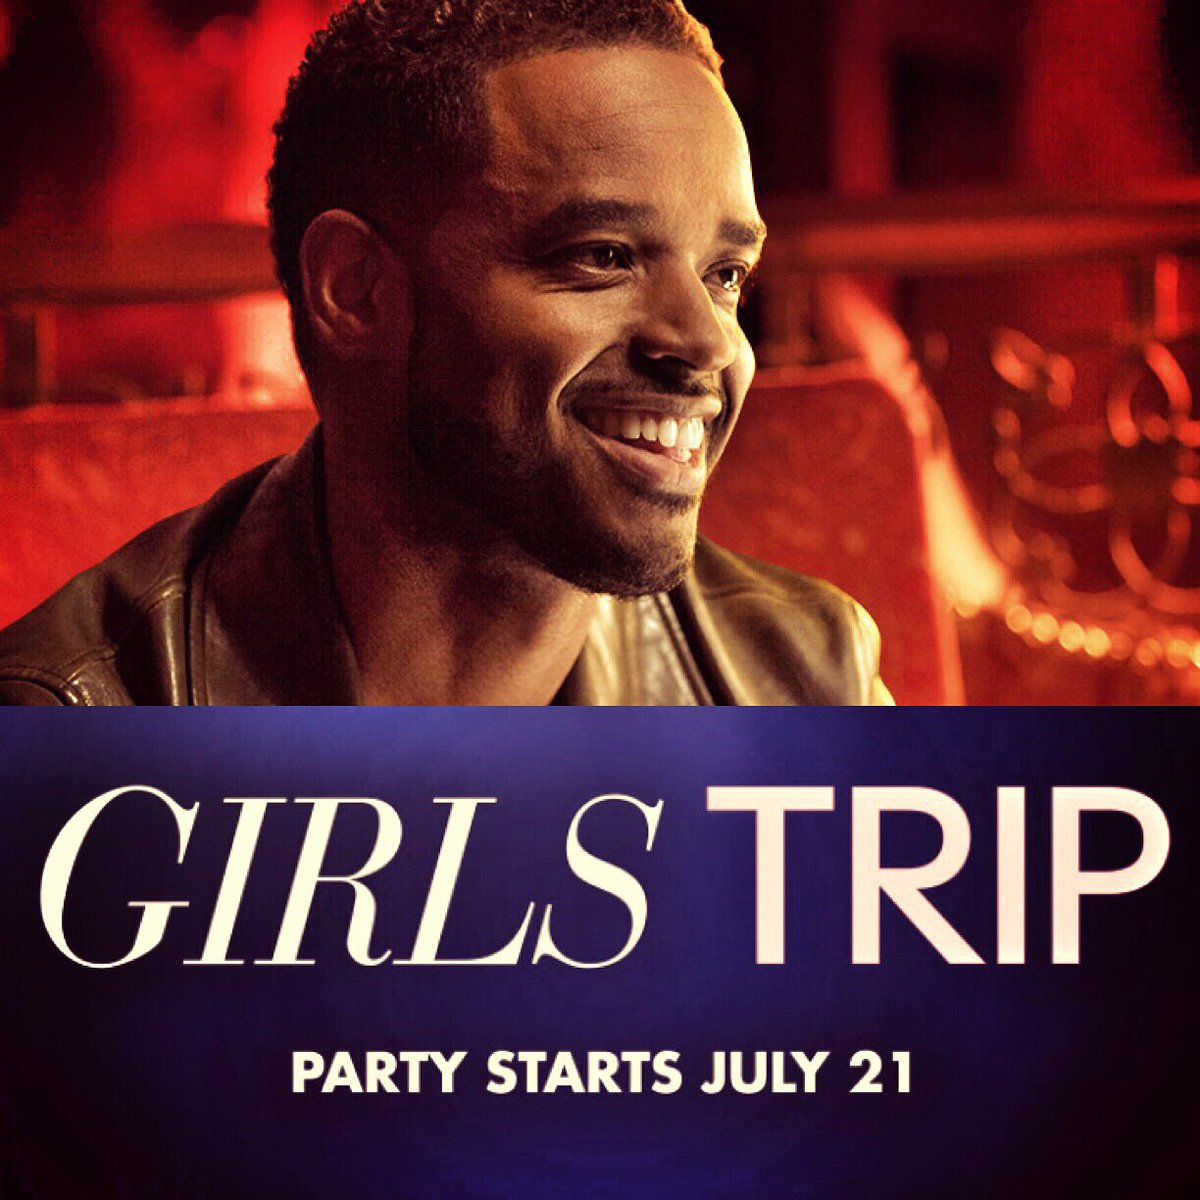 If you don't know, now ya know! Get ready... Epic times... #GirlsTrip https://t.co/3FfsNgzsmM